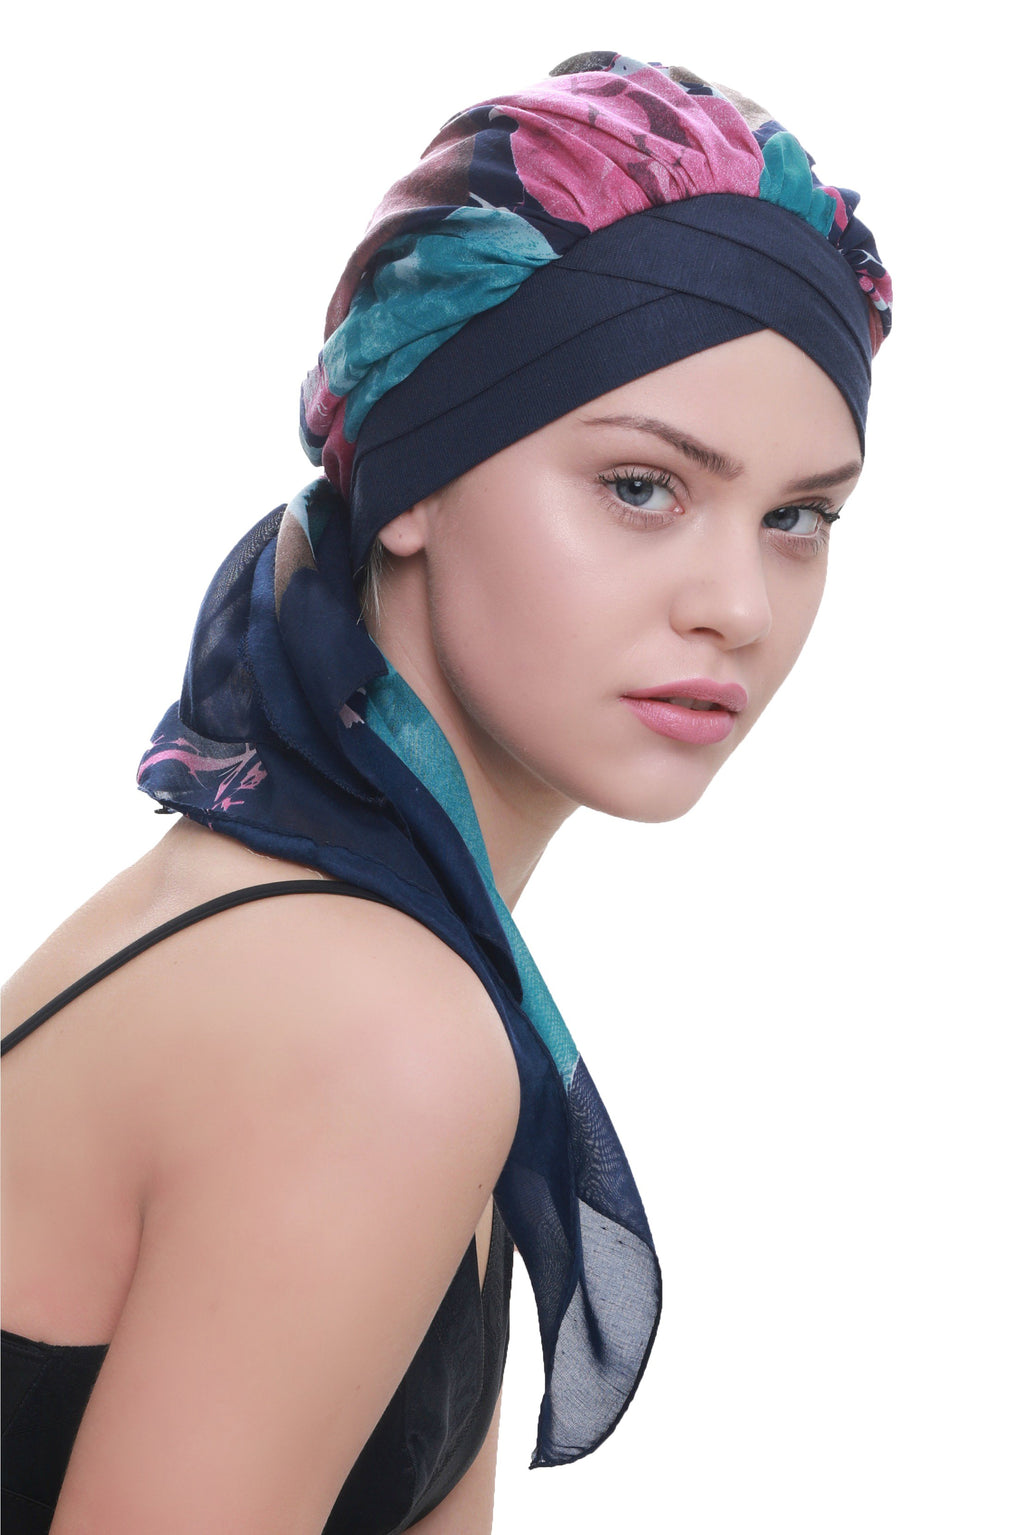 Deresina W cap with attached chemo headscarf denim teal abstract design